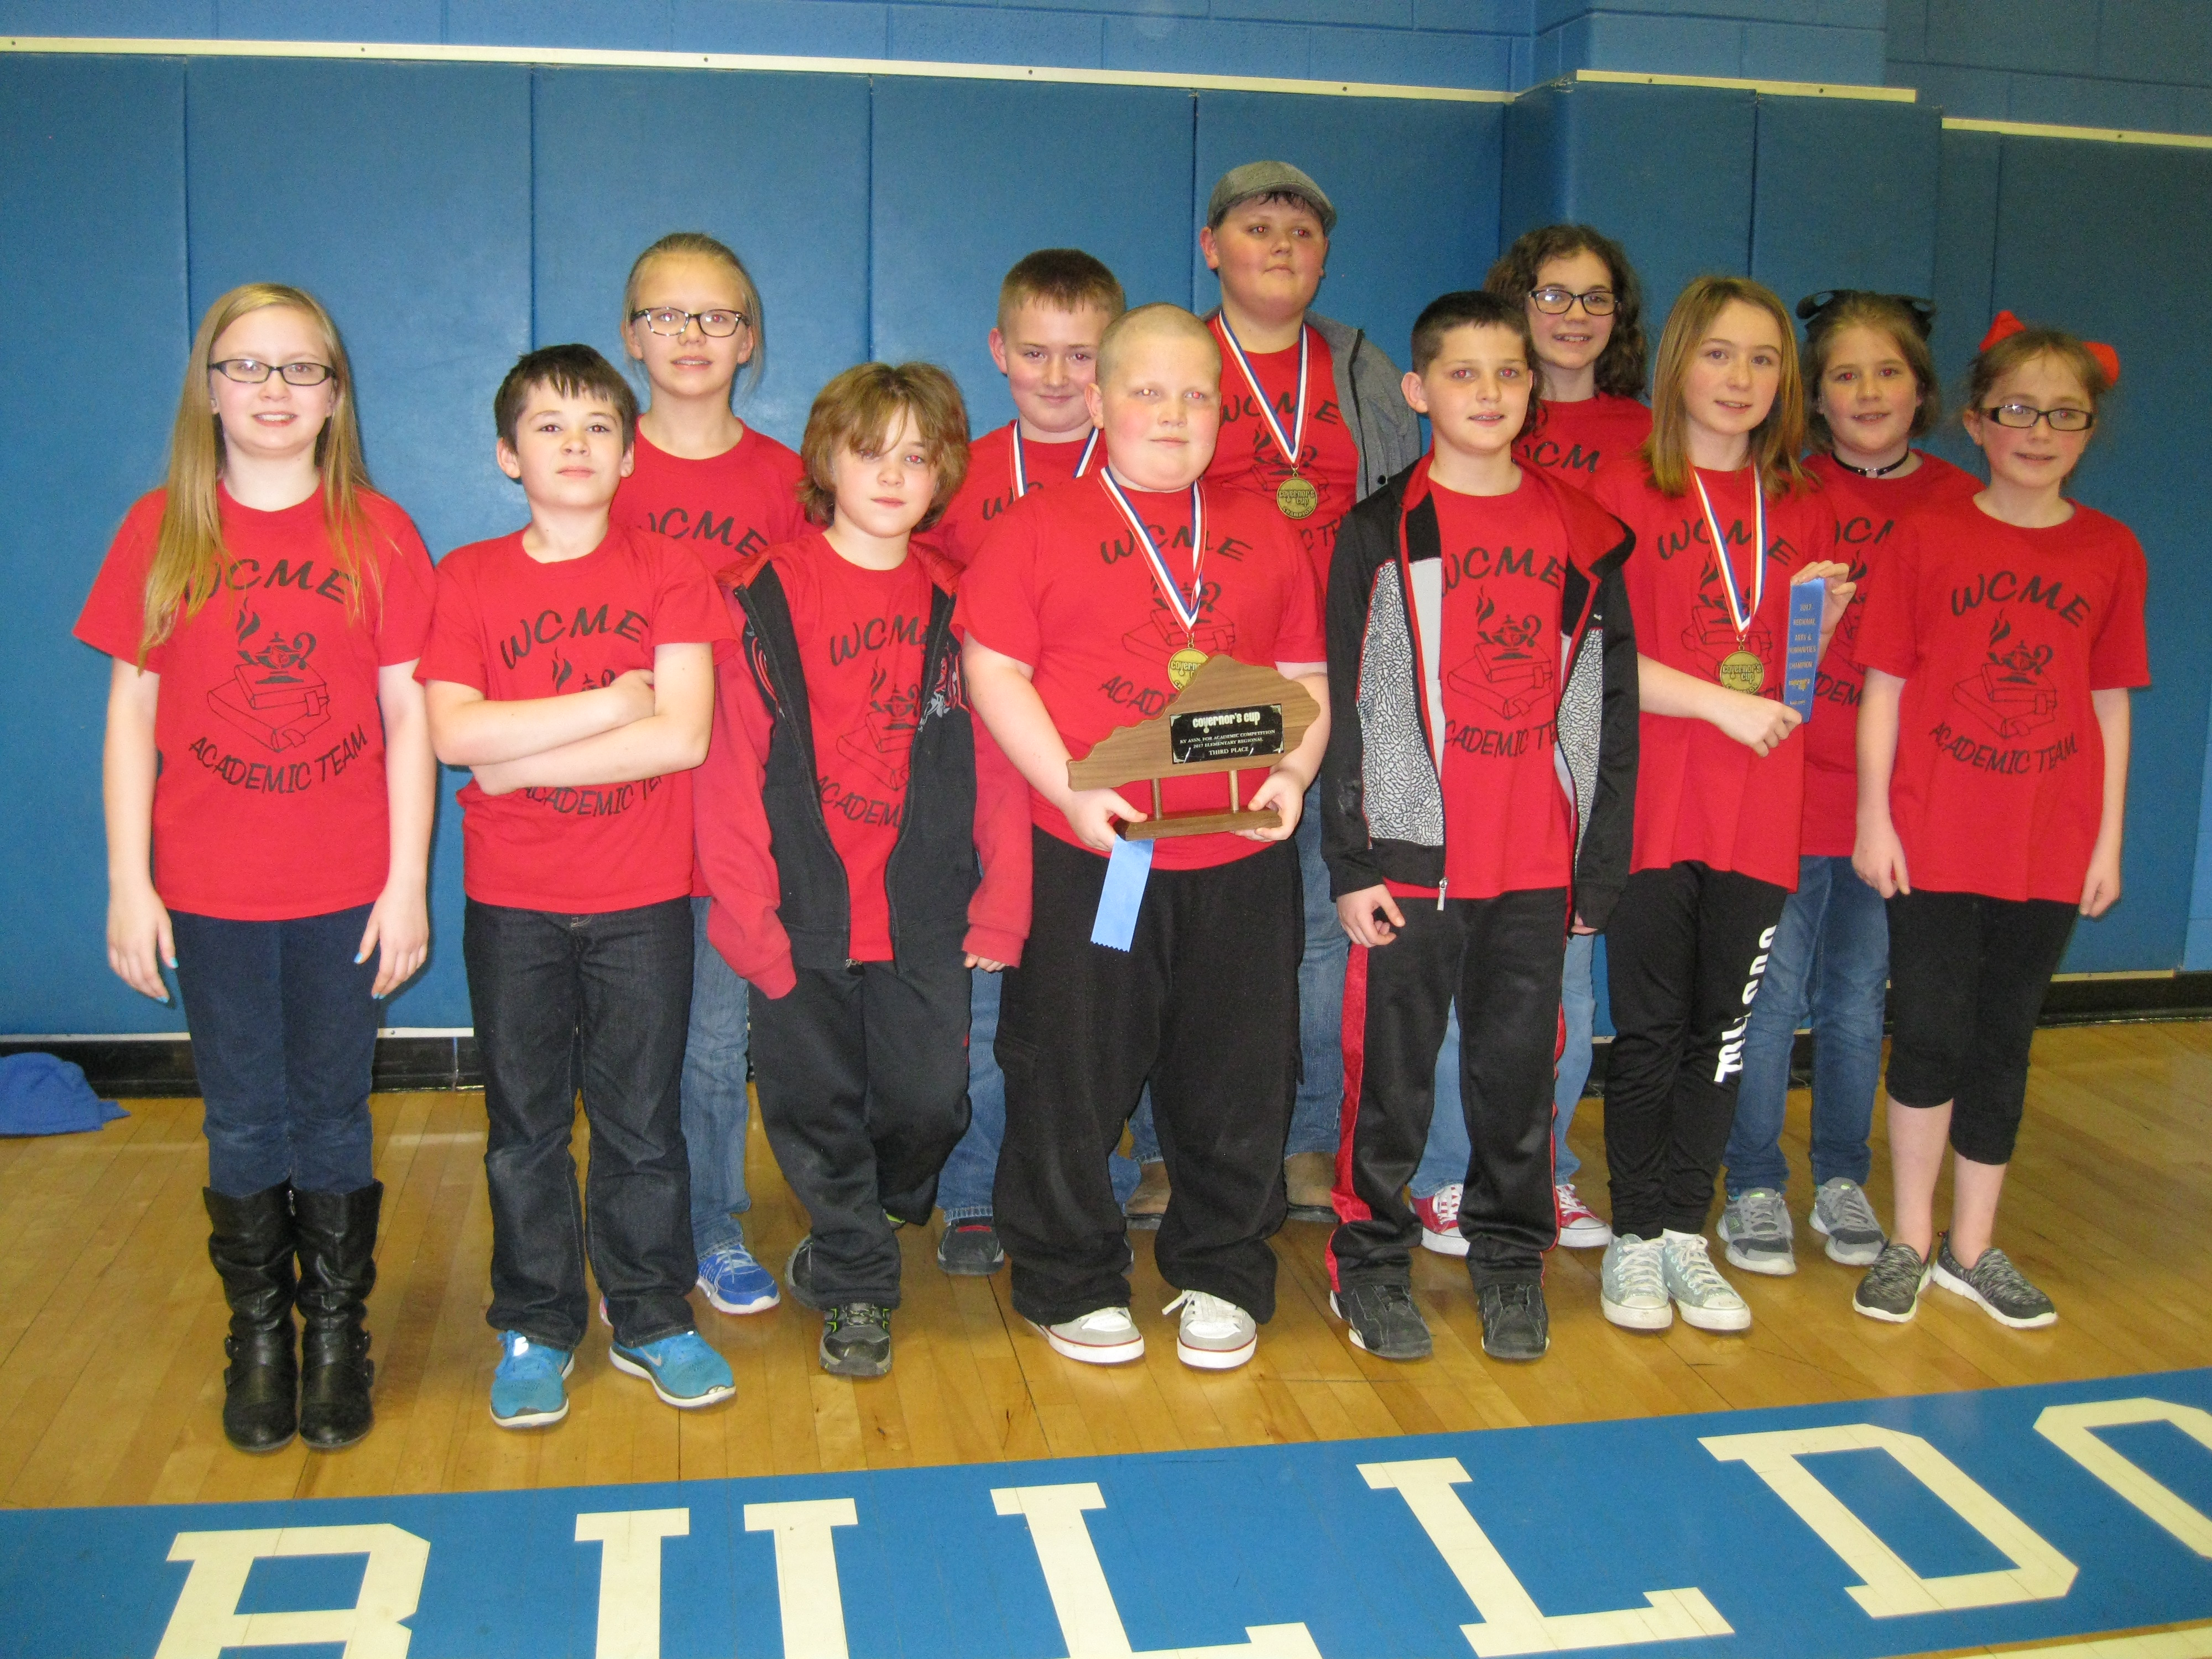 WCME Academic Team wins third place overall for the Governor's Cup Competiton, which was held at Clinton County Middle School